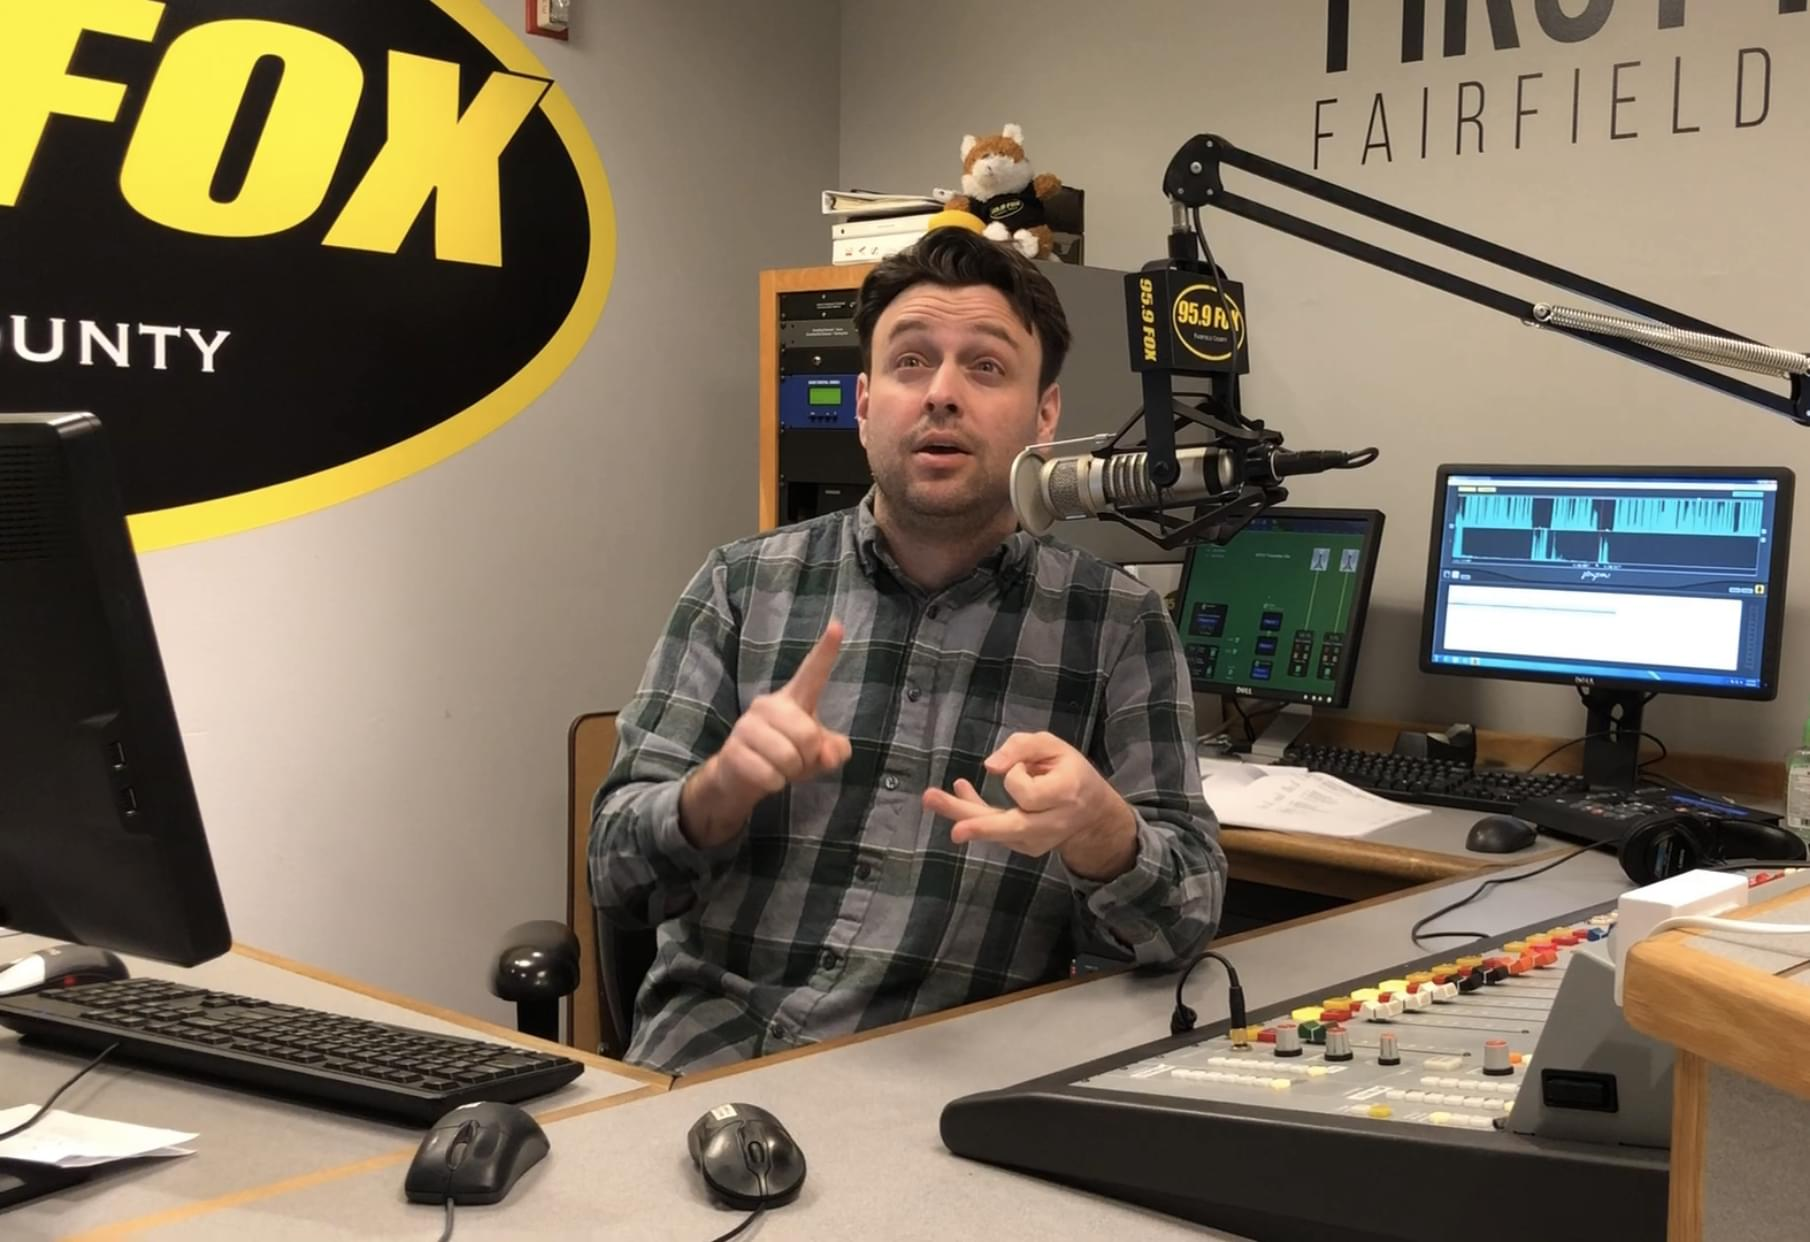 WATCH: 95 Things To Do During The 95 Second Guarantee